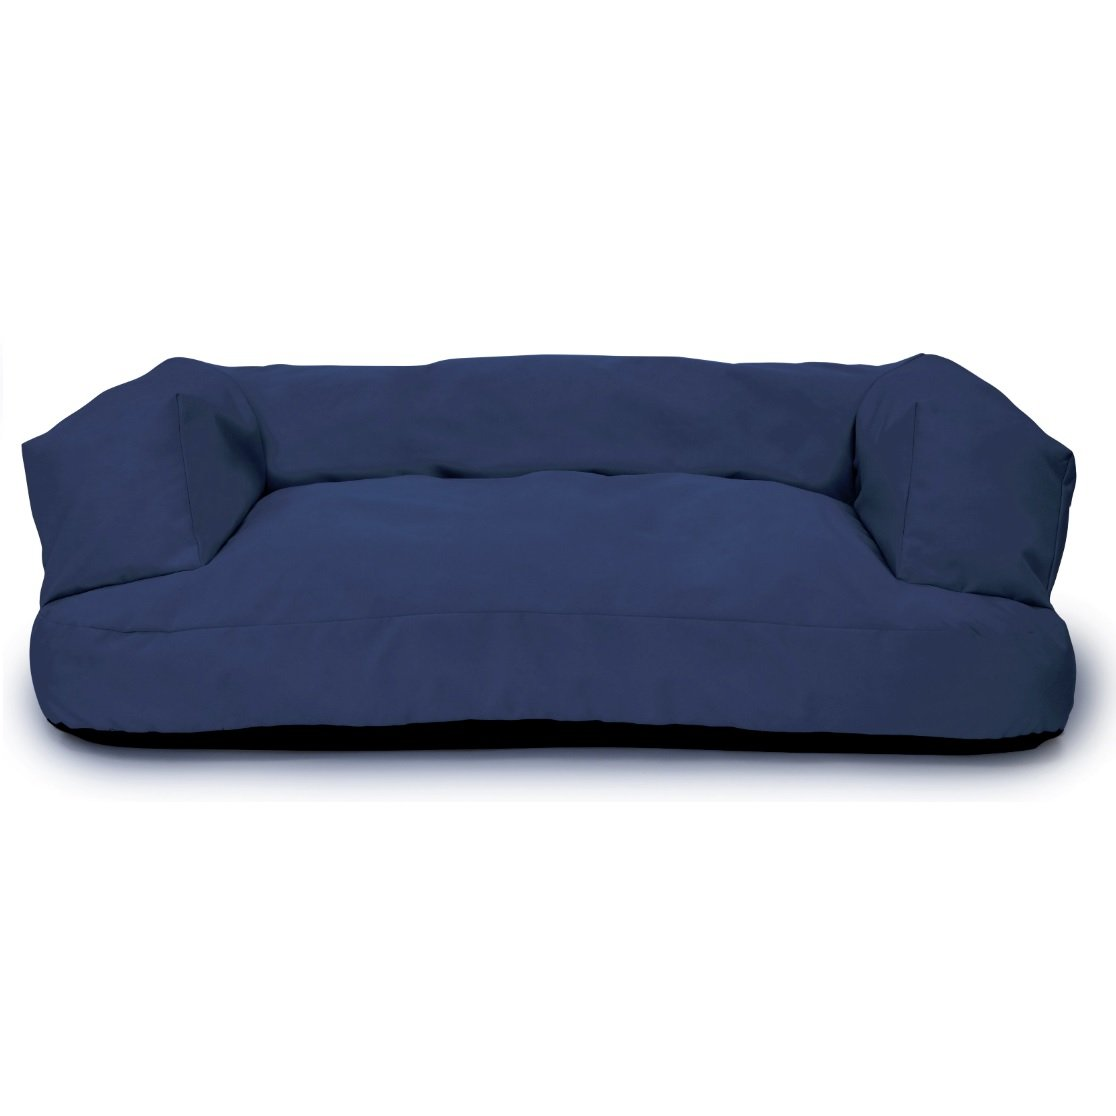 Great Dane Dog Bed XXL Extra Large Washable - Therapeutic Memory Foam Fill Pet Sofa - Big Pup Couch Best Comfort Removable Cover Bundle w Rope Toy